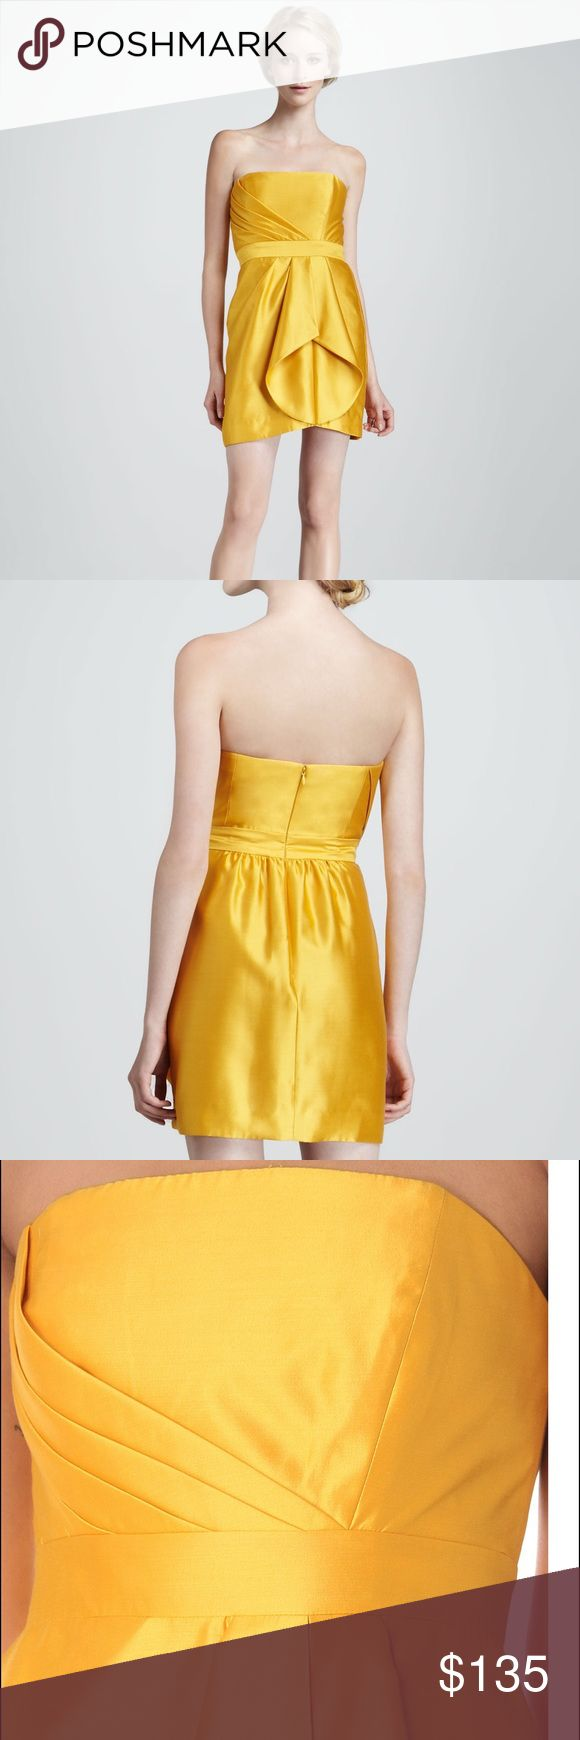 NWT Shoshanna Orly Strapless Dress In Yellow Topaz NWT. Retails for $385.00. Pleats radiate diagonally across the bodice of this strapless silk dress before unfolding into lustrous drapes at one side of the slim pencil skirt. Price listed is 65% off Retail! Shoshanna Dresses Strapless